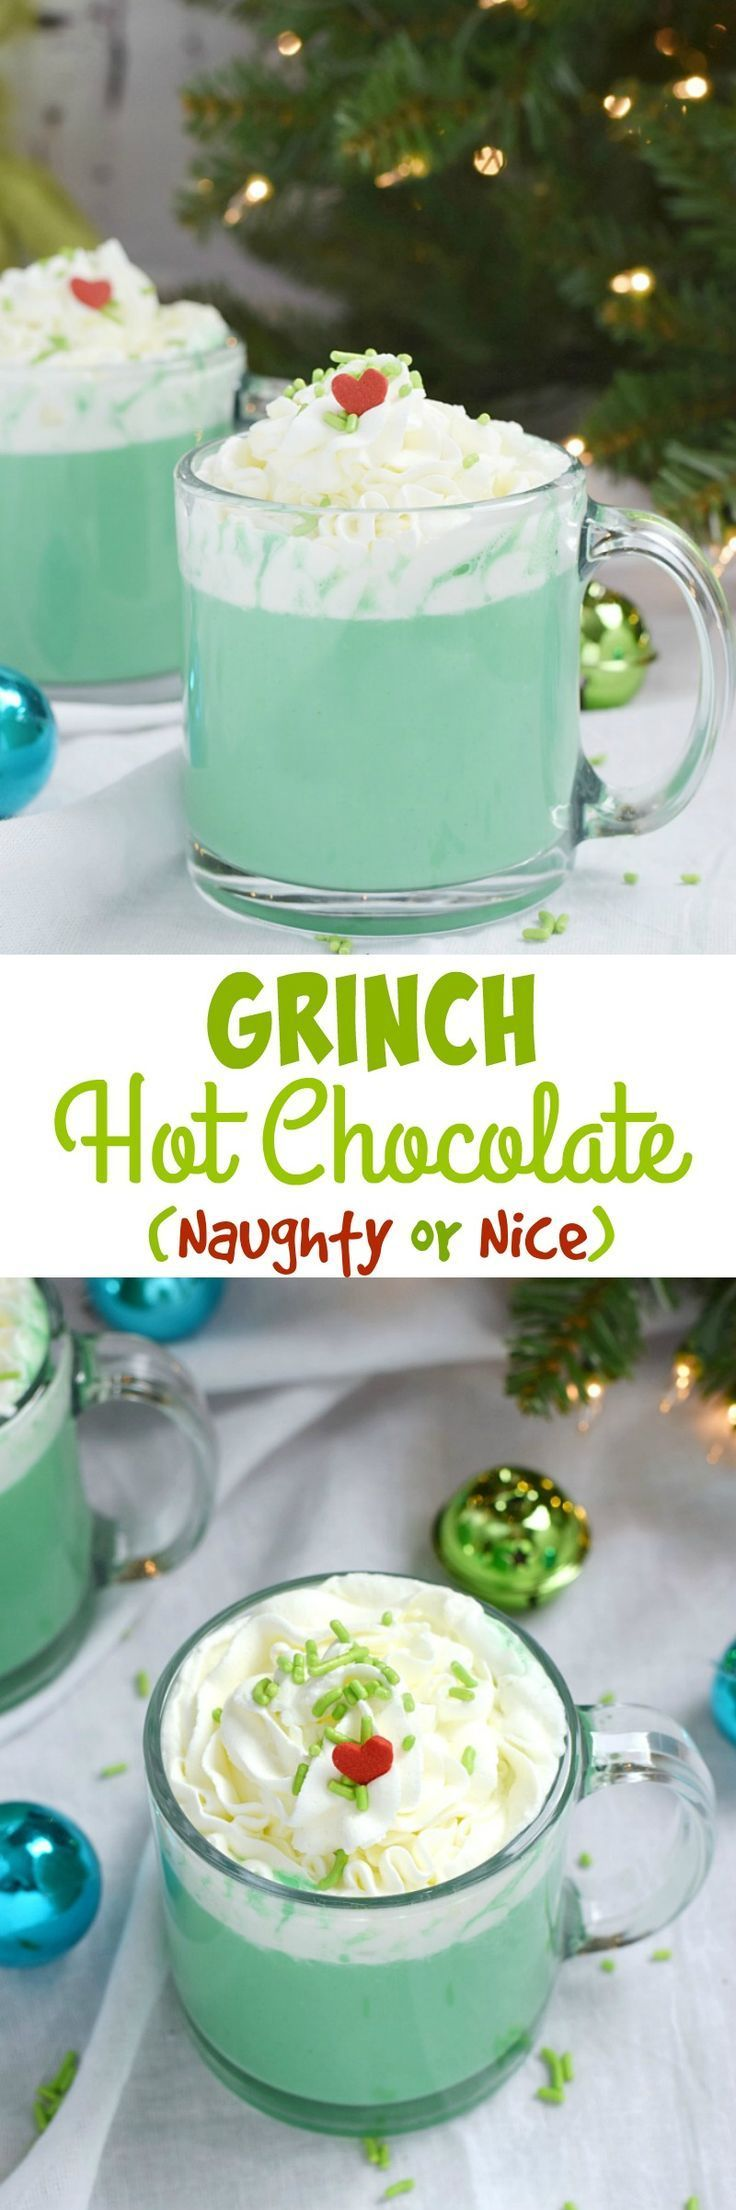 Would you like your Grinch Hot Chocolate served Naughty or Nice? You get to decide how everyone in the family gets to warm up this holiday season | http://cookingwithcurls.com